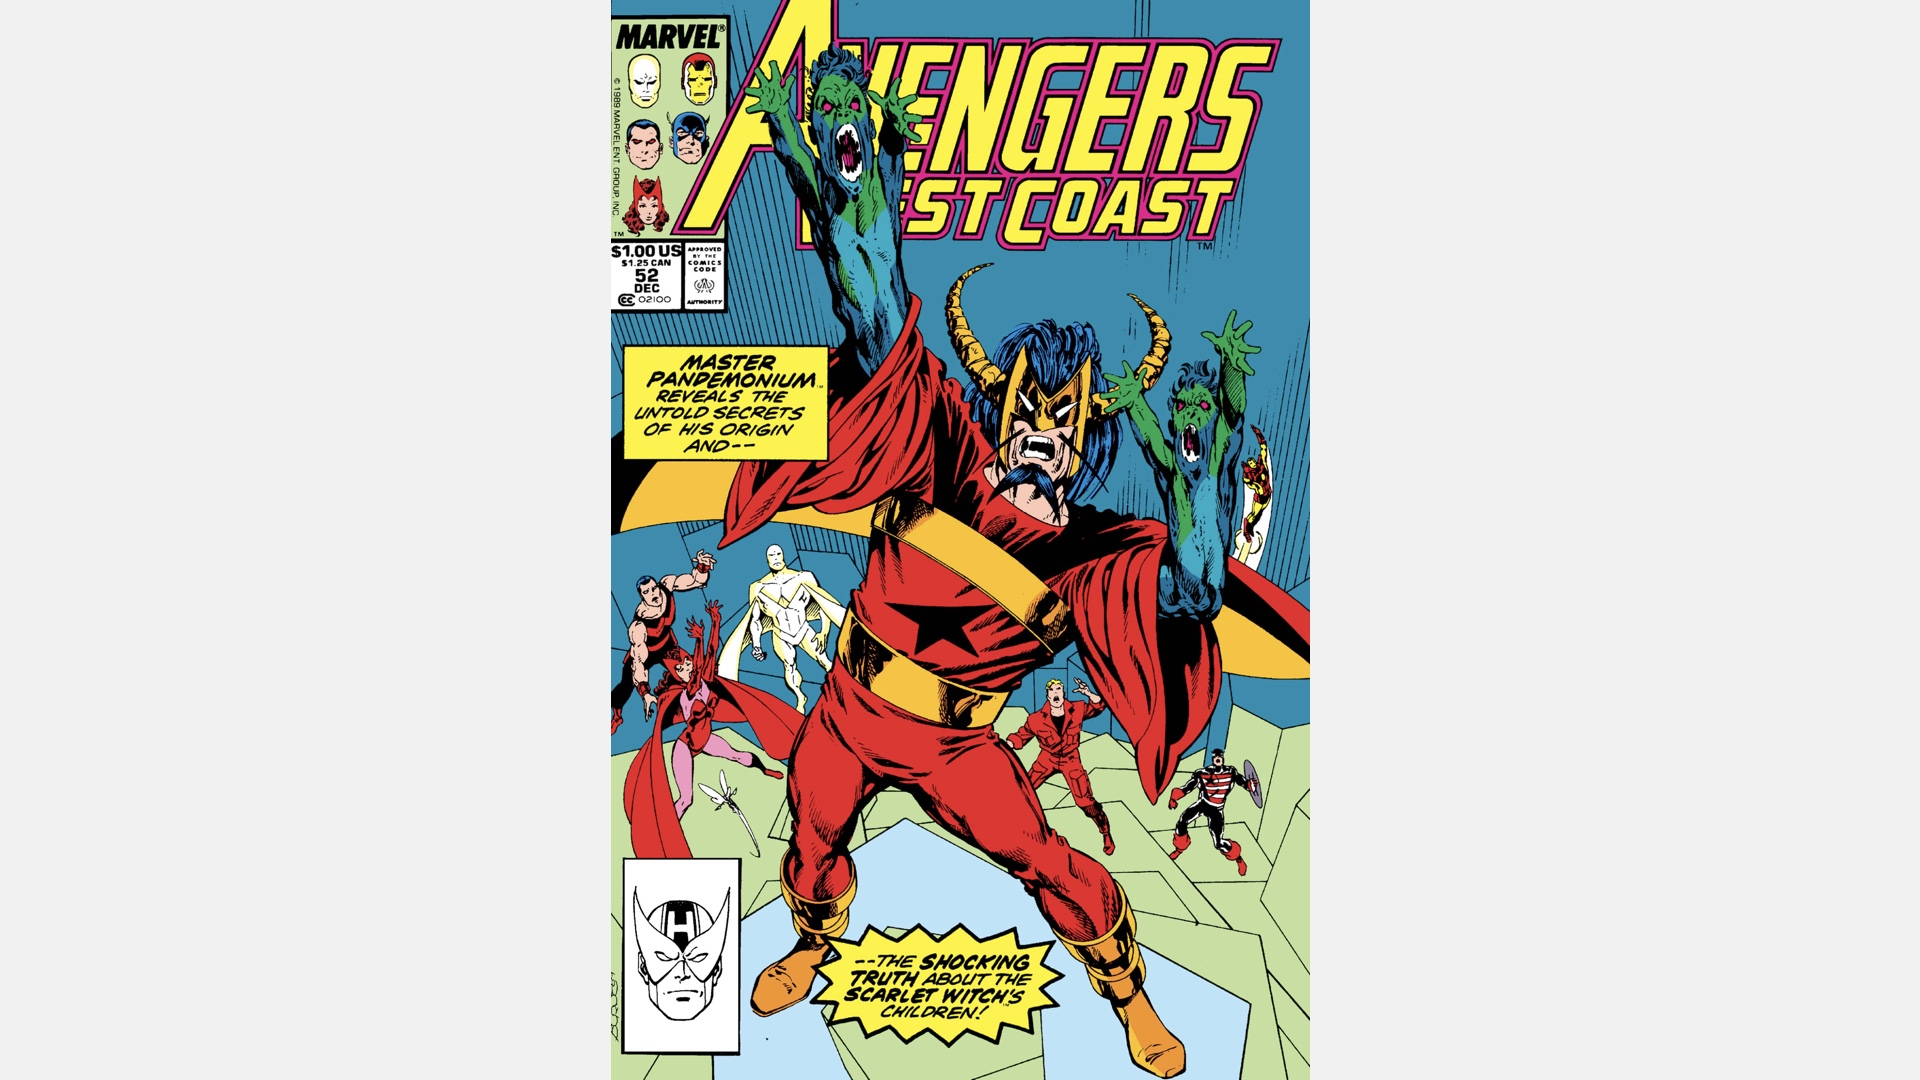 cover of West Coast Avengers #52